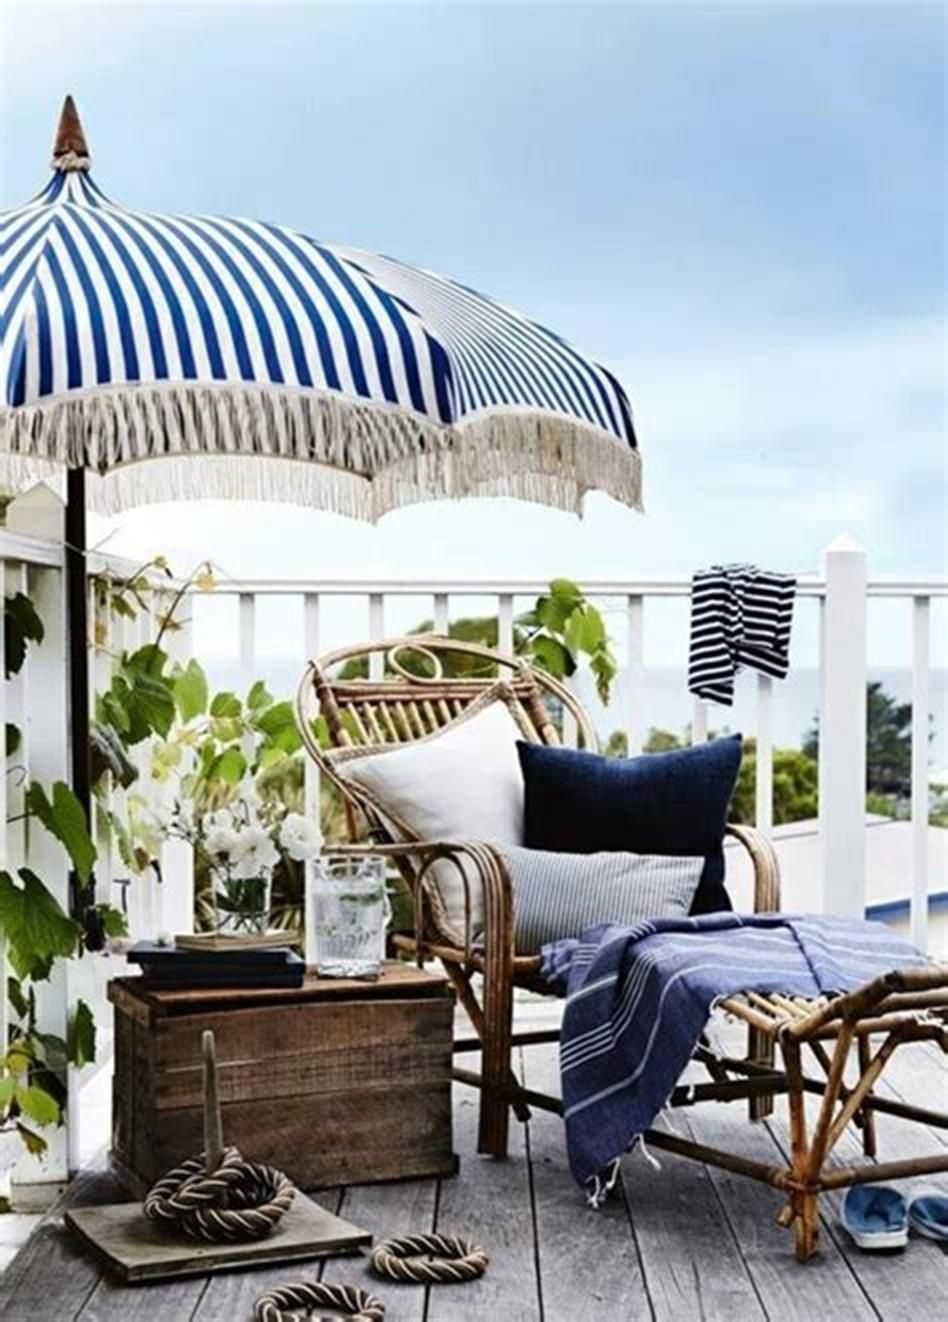 39 Affordable Nautical Outdoor Decorating Ideas 17 In 2020 With